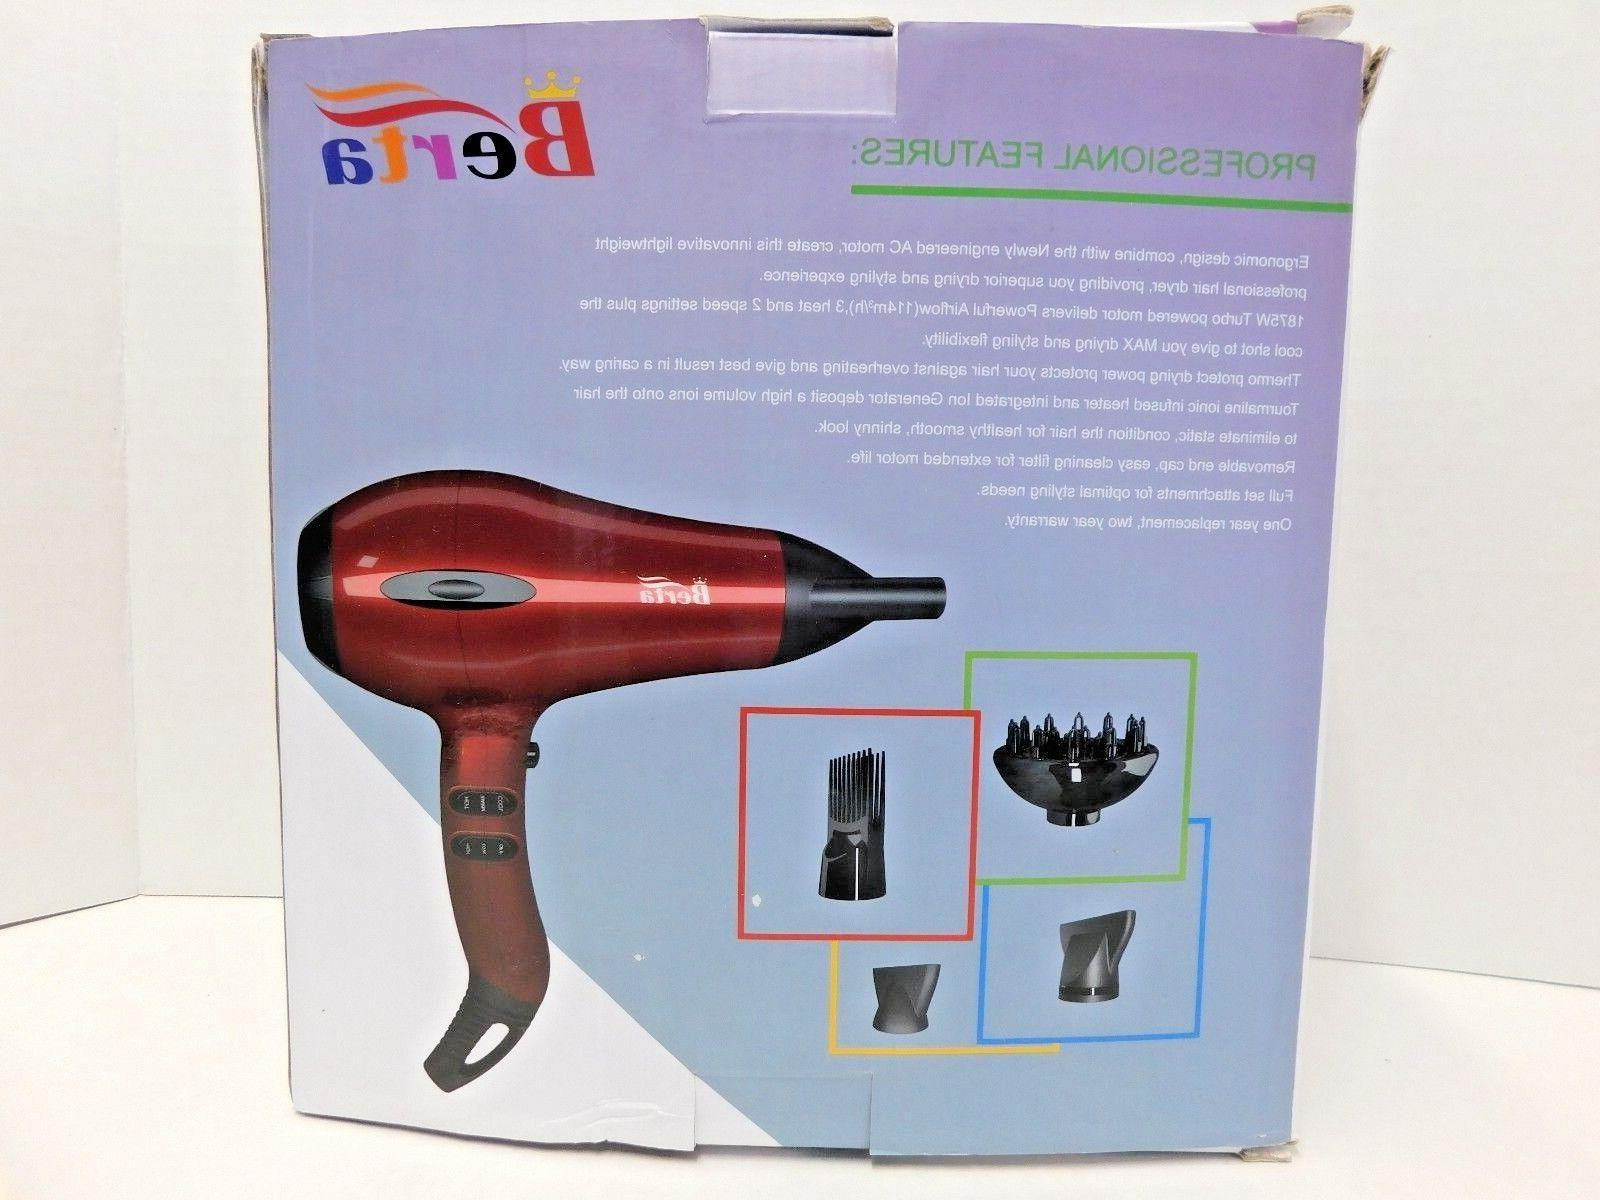 Berta 1875w 2 Speed 3 Hair With Accessories, Red